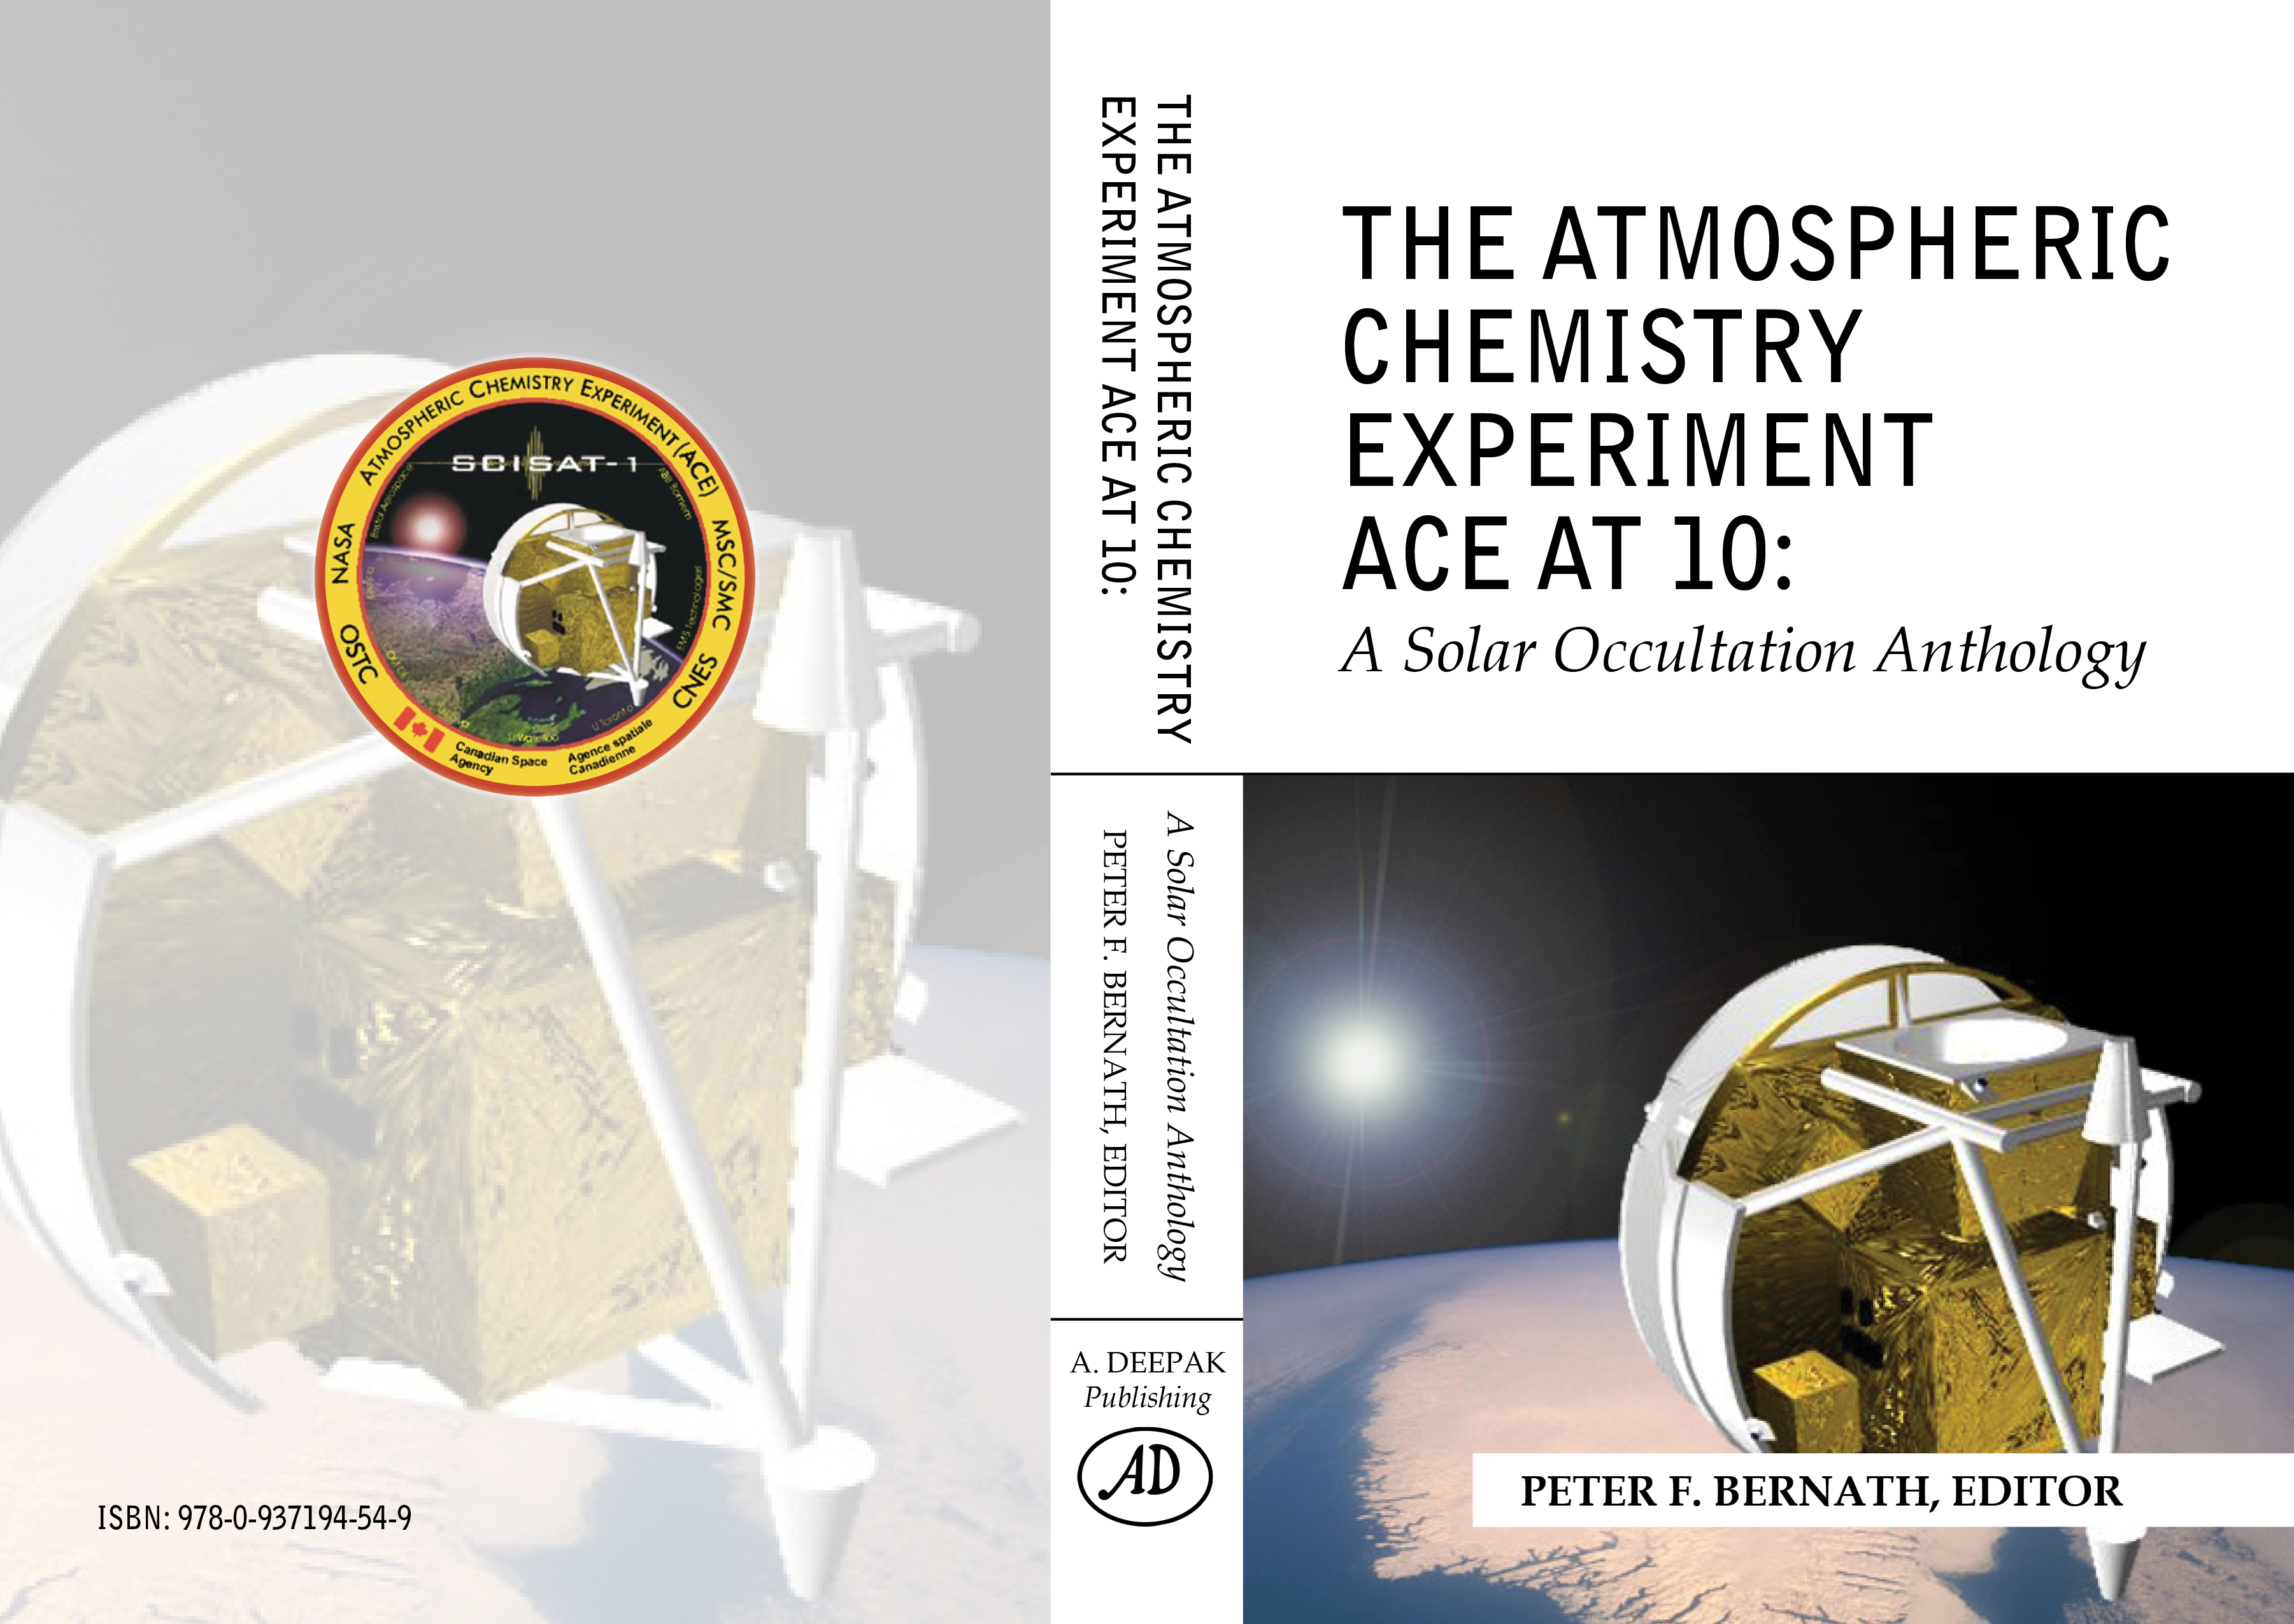 The Atmospheric Chemistry Experiment ACE at 10: A Solar Occultation Anthology Cover